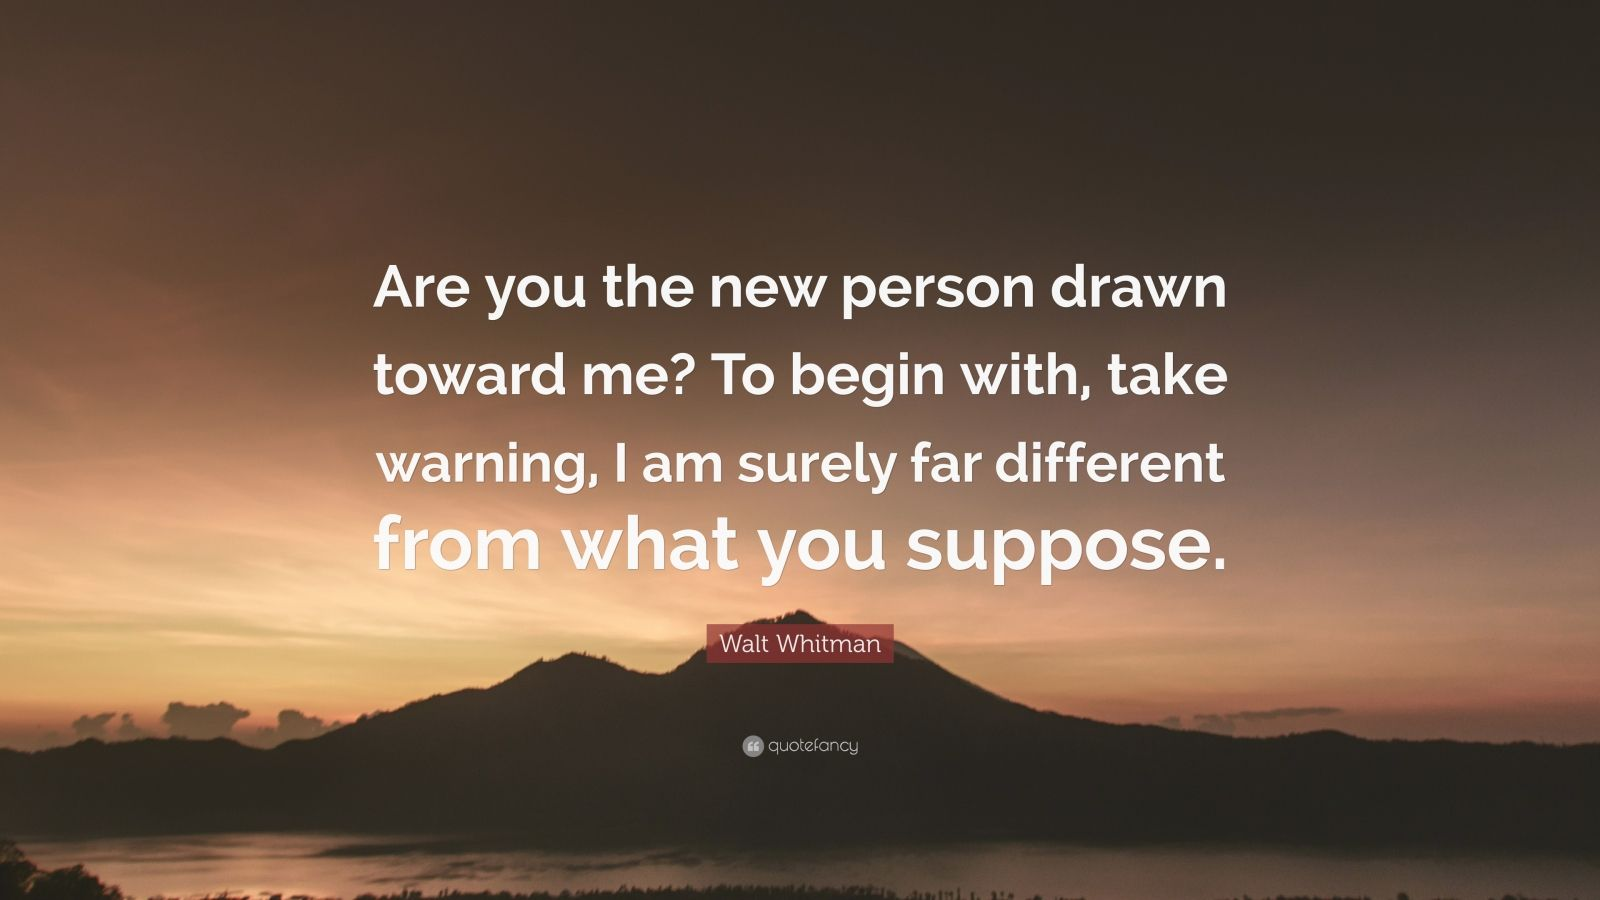 """Walt Whitman Quote: """"Are you the new person drawn toward me? To begin with, take warning, I am surely far different from what you suppose."""""""